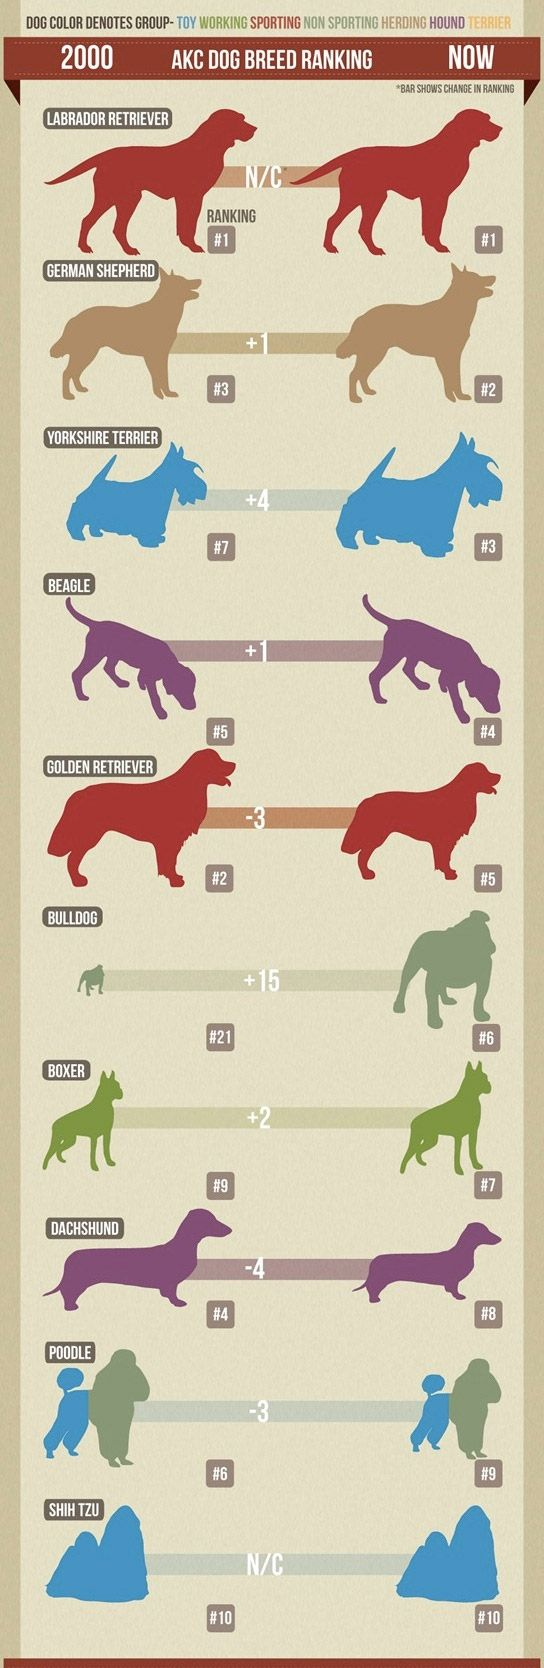 AKC Dog Breed Ranking Change over 10 years. #akc #dogs #breeds